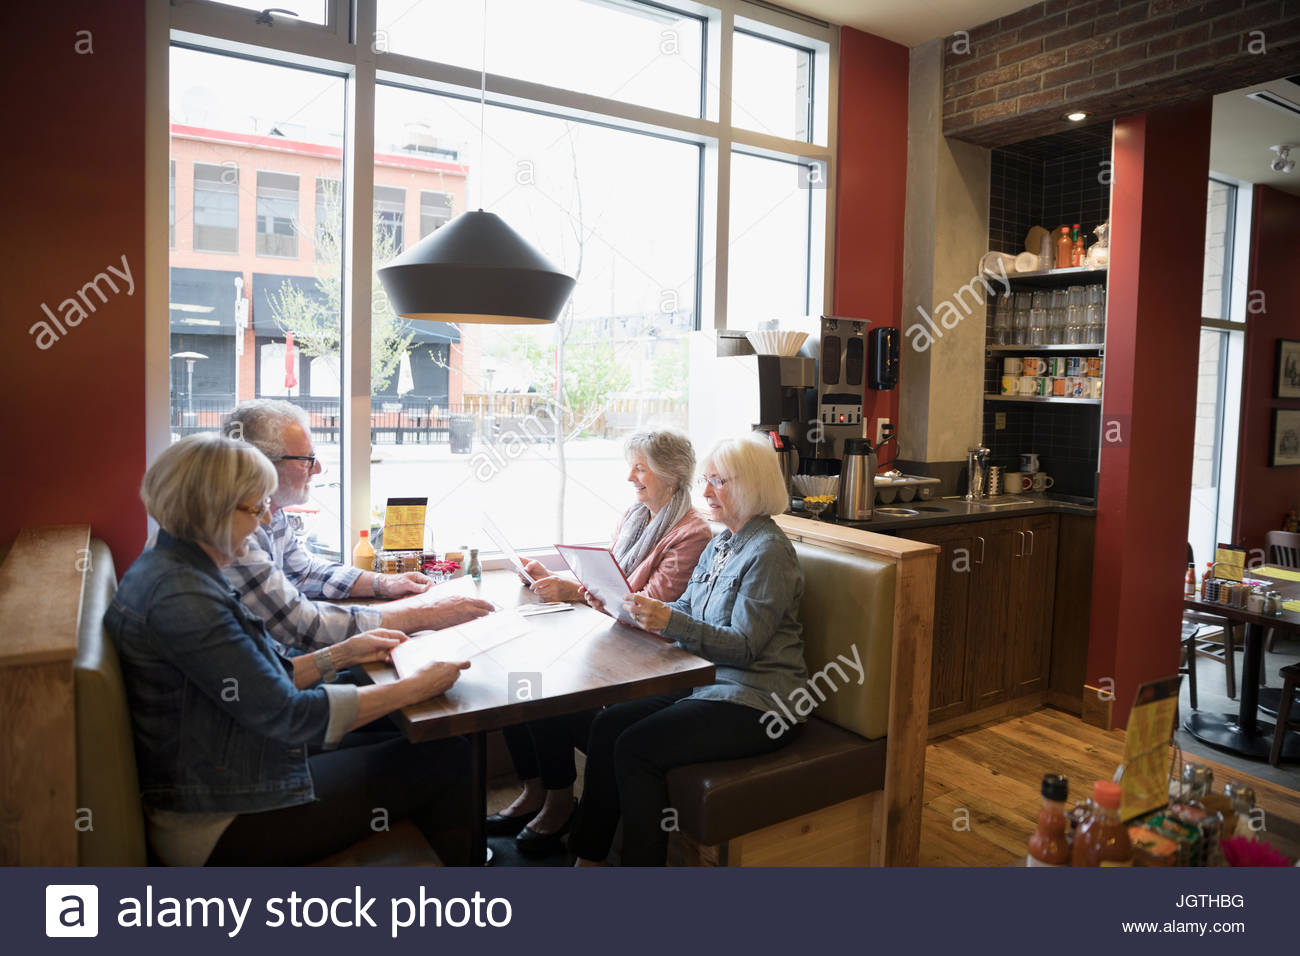 Senior friends dining, looking at menus in diner booth - Stock Image